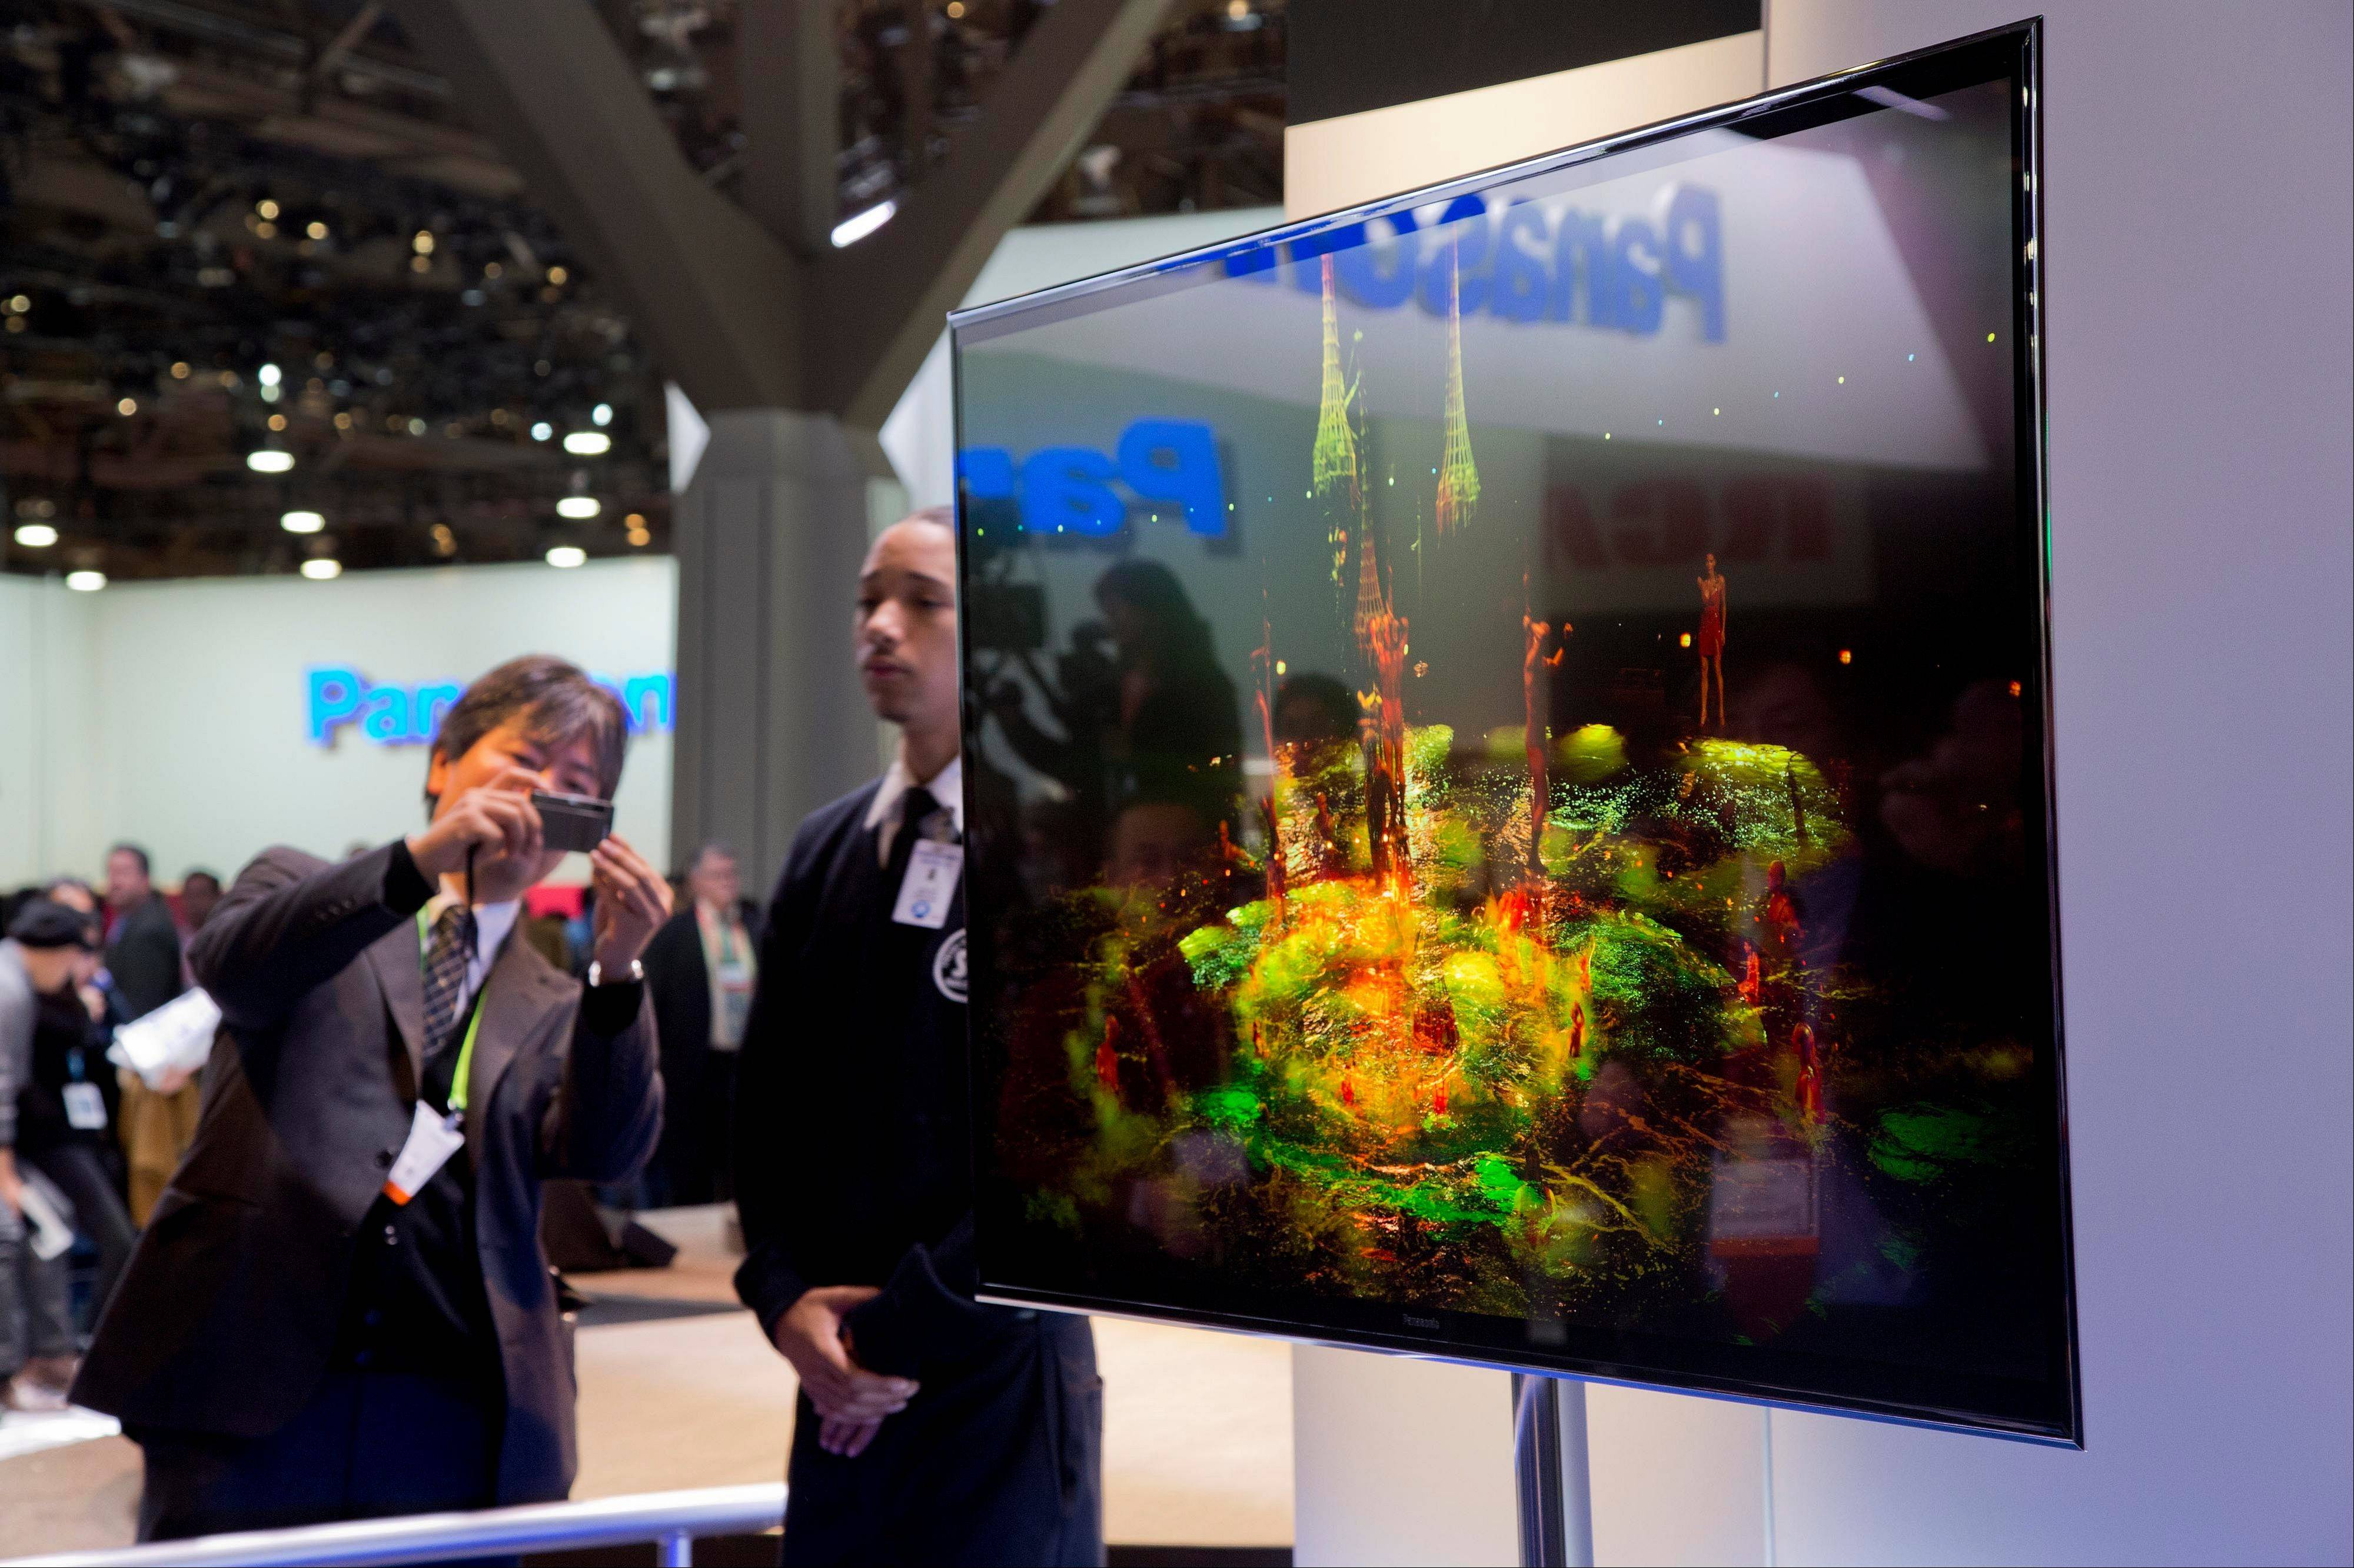 Industry affiliates photograph Panasonic's 4K OLED large screen television Tuesday at the Consumer Electronics Show in Las Vegas.